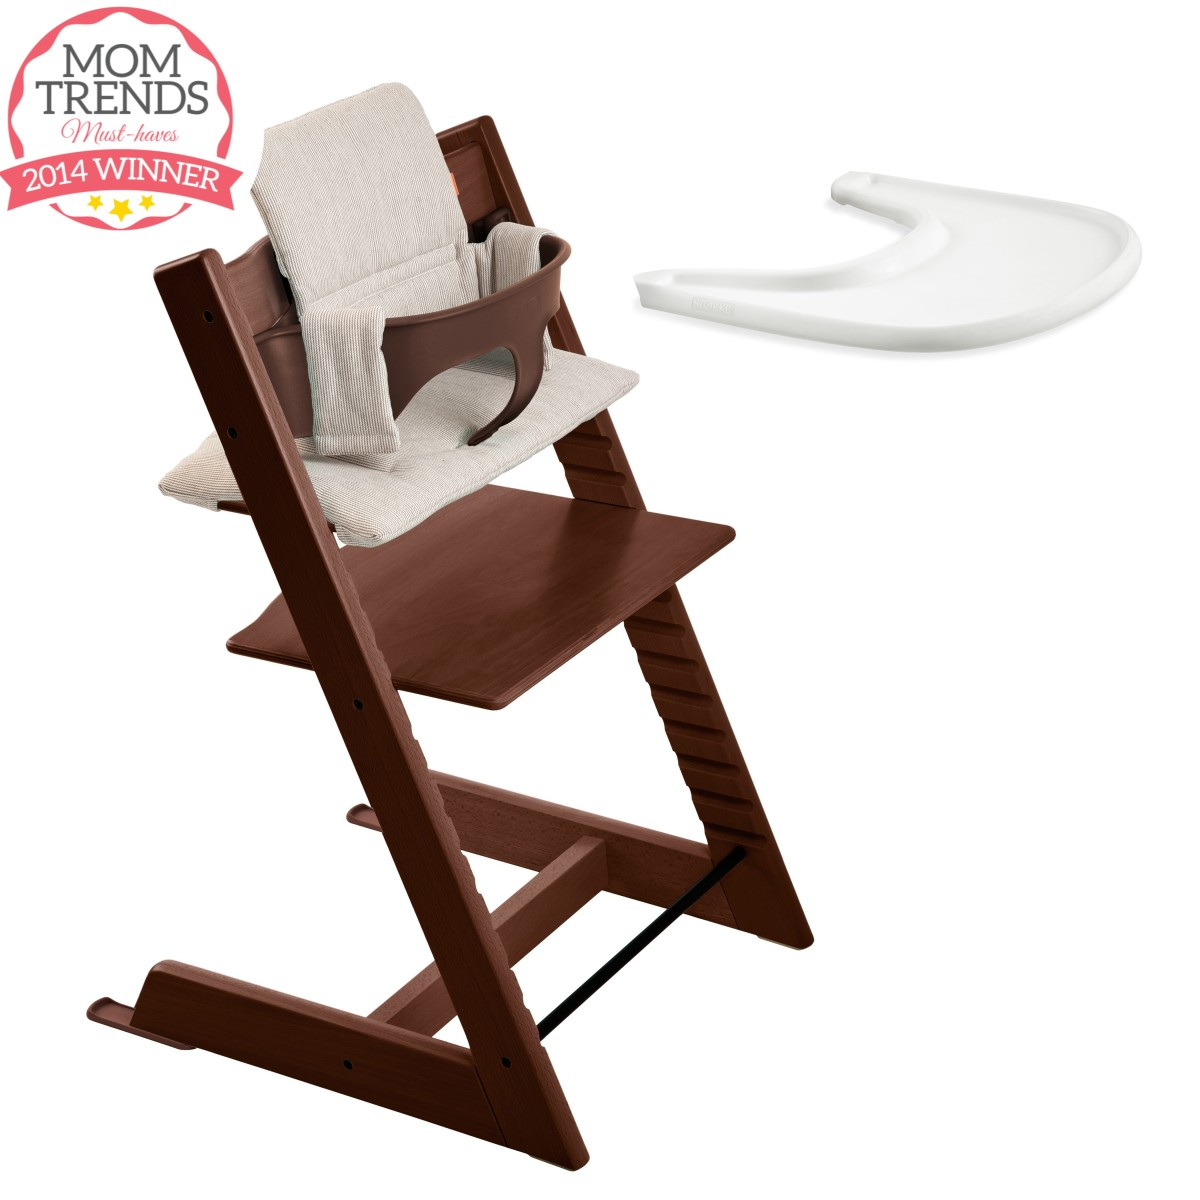 Nuna Zaaz High Chair Nuna Zaaz Archives Momtrendsmomtrends